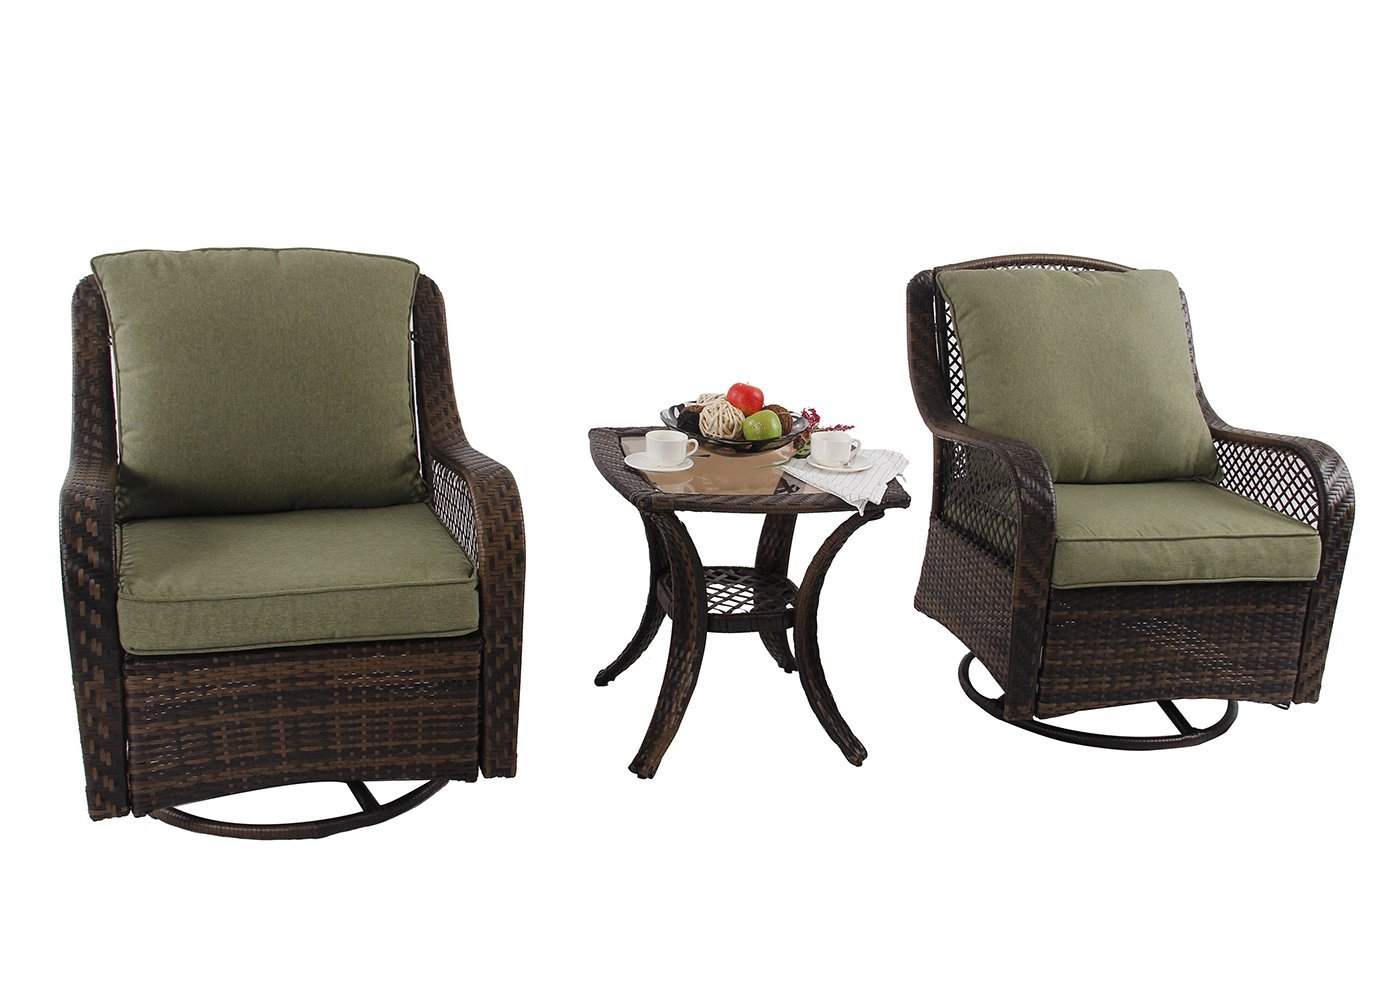 Prime Luxury Furniture Review Phi Villa Patio Outdoor 3 Piece Andrewgaddart Wooden Chair Designs For Living Room Andrewgaddartcom